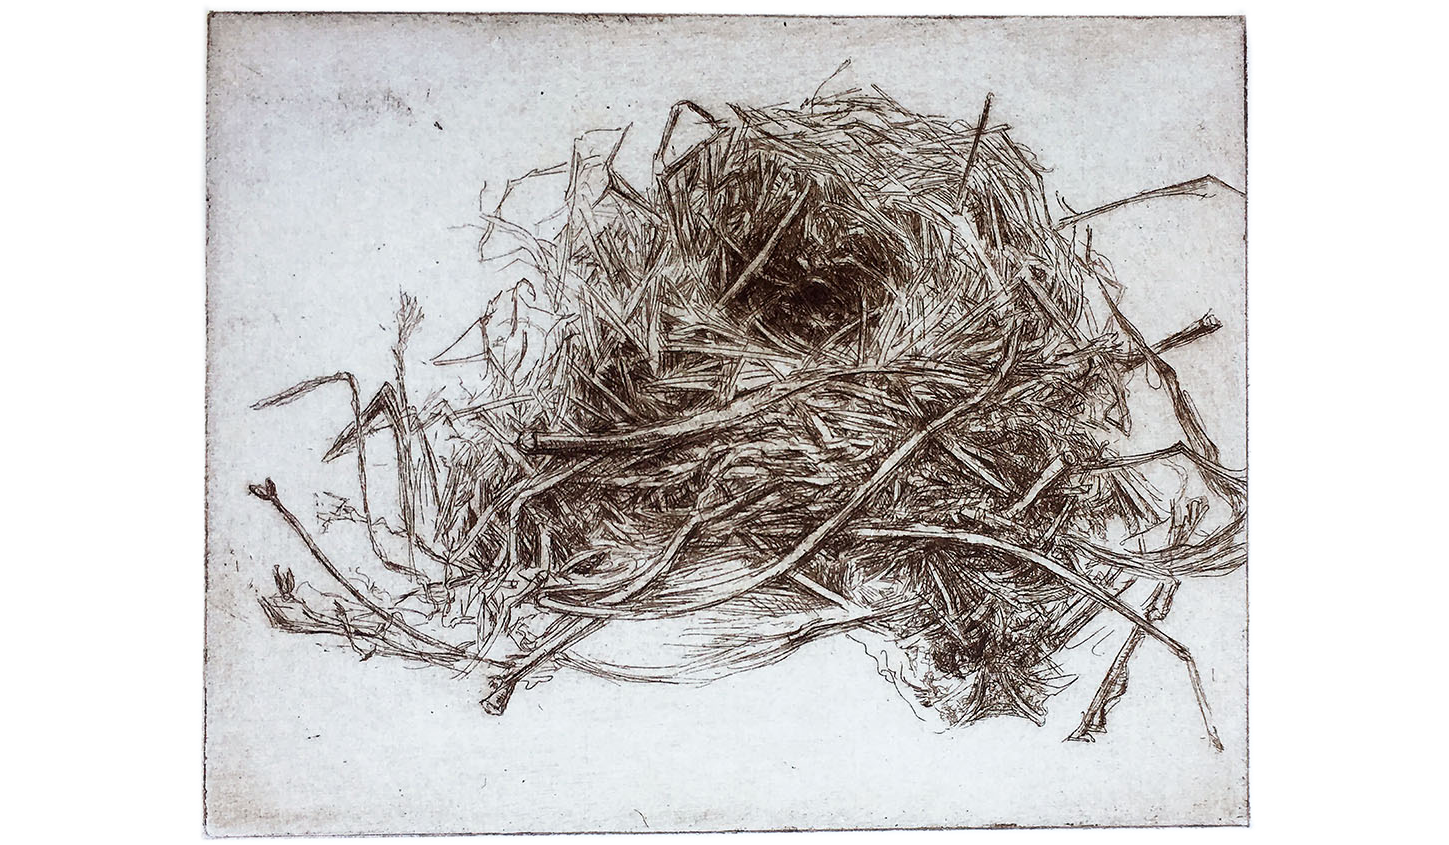 Song Sparrow Nest, 2002, Etching, 4 x 5